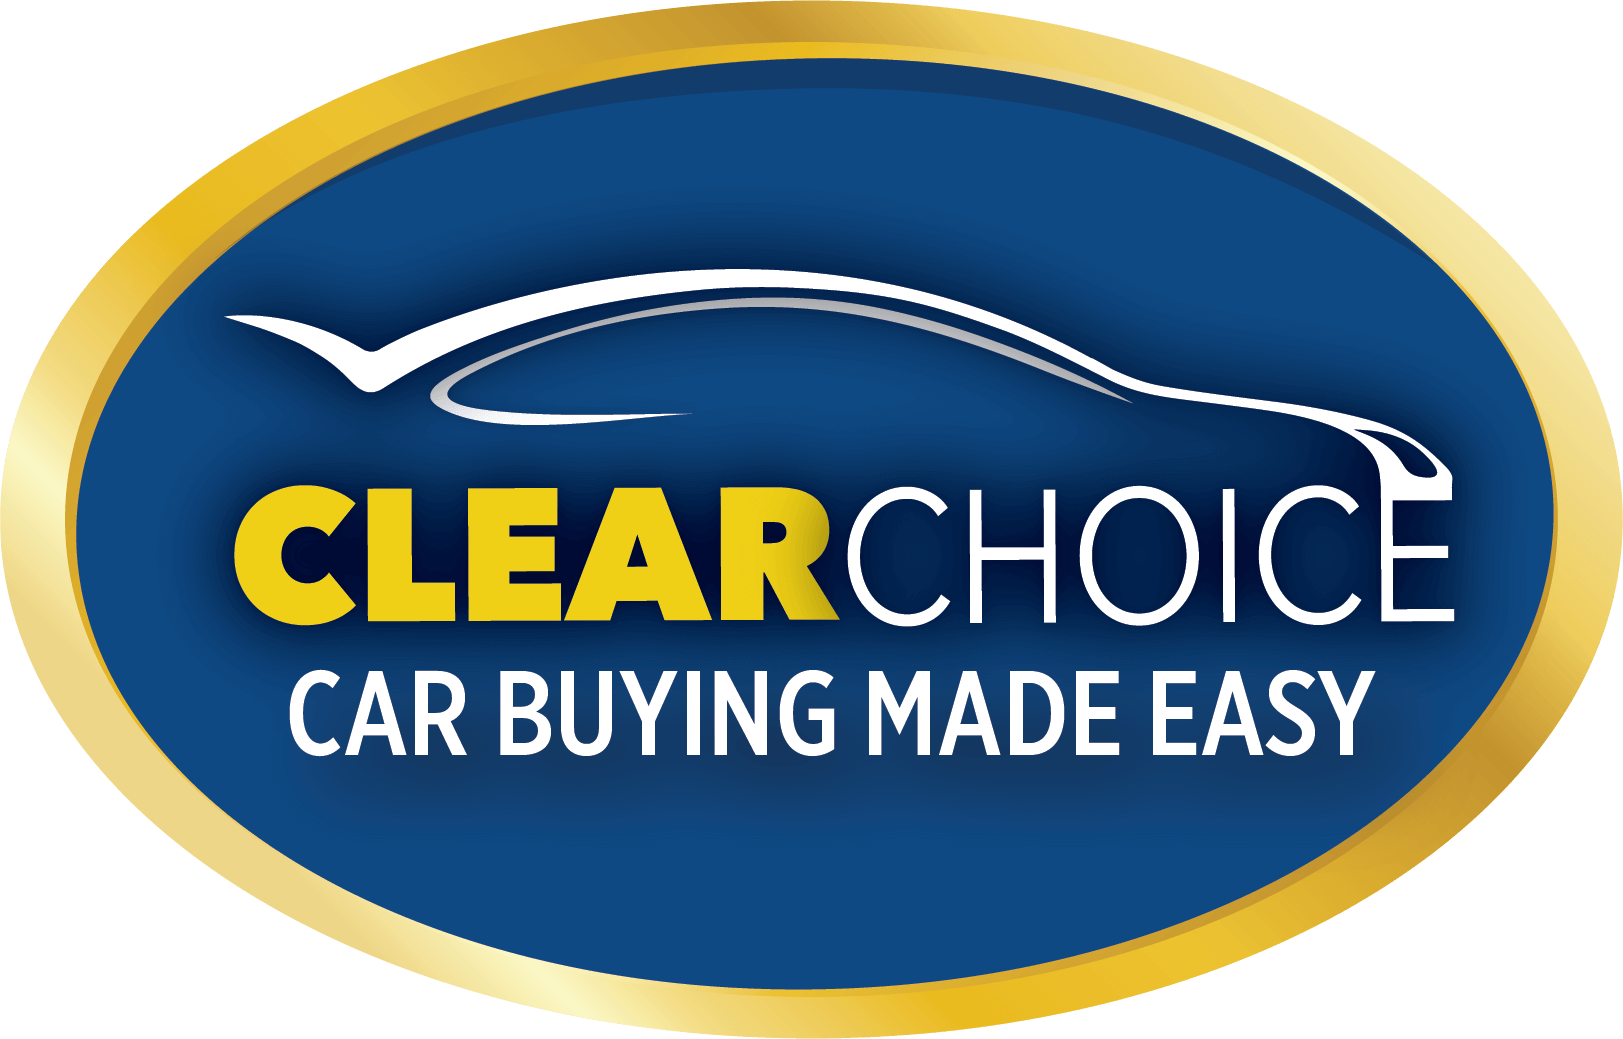 Clear Choice Car Buying Made Easy Logo